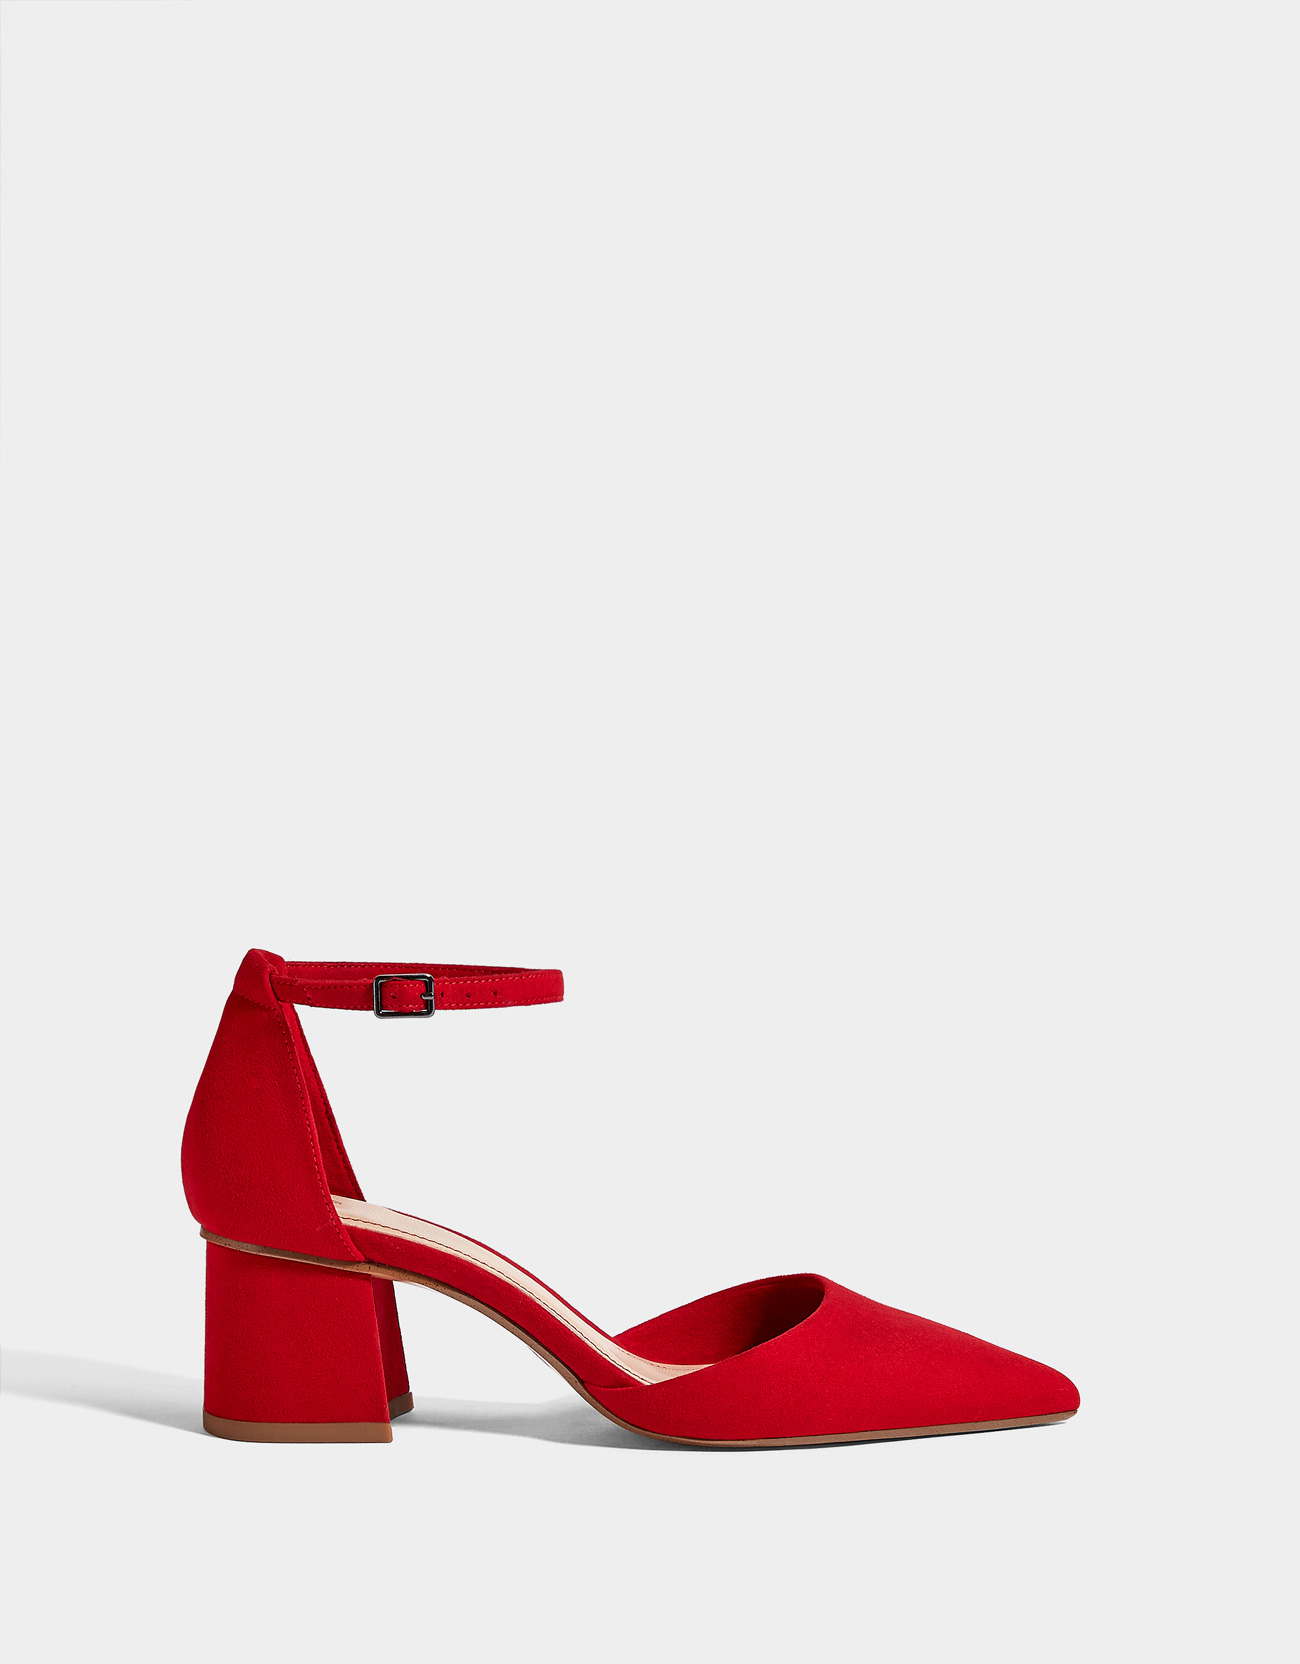 6782fd51127 Red mid-heel shoes